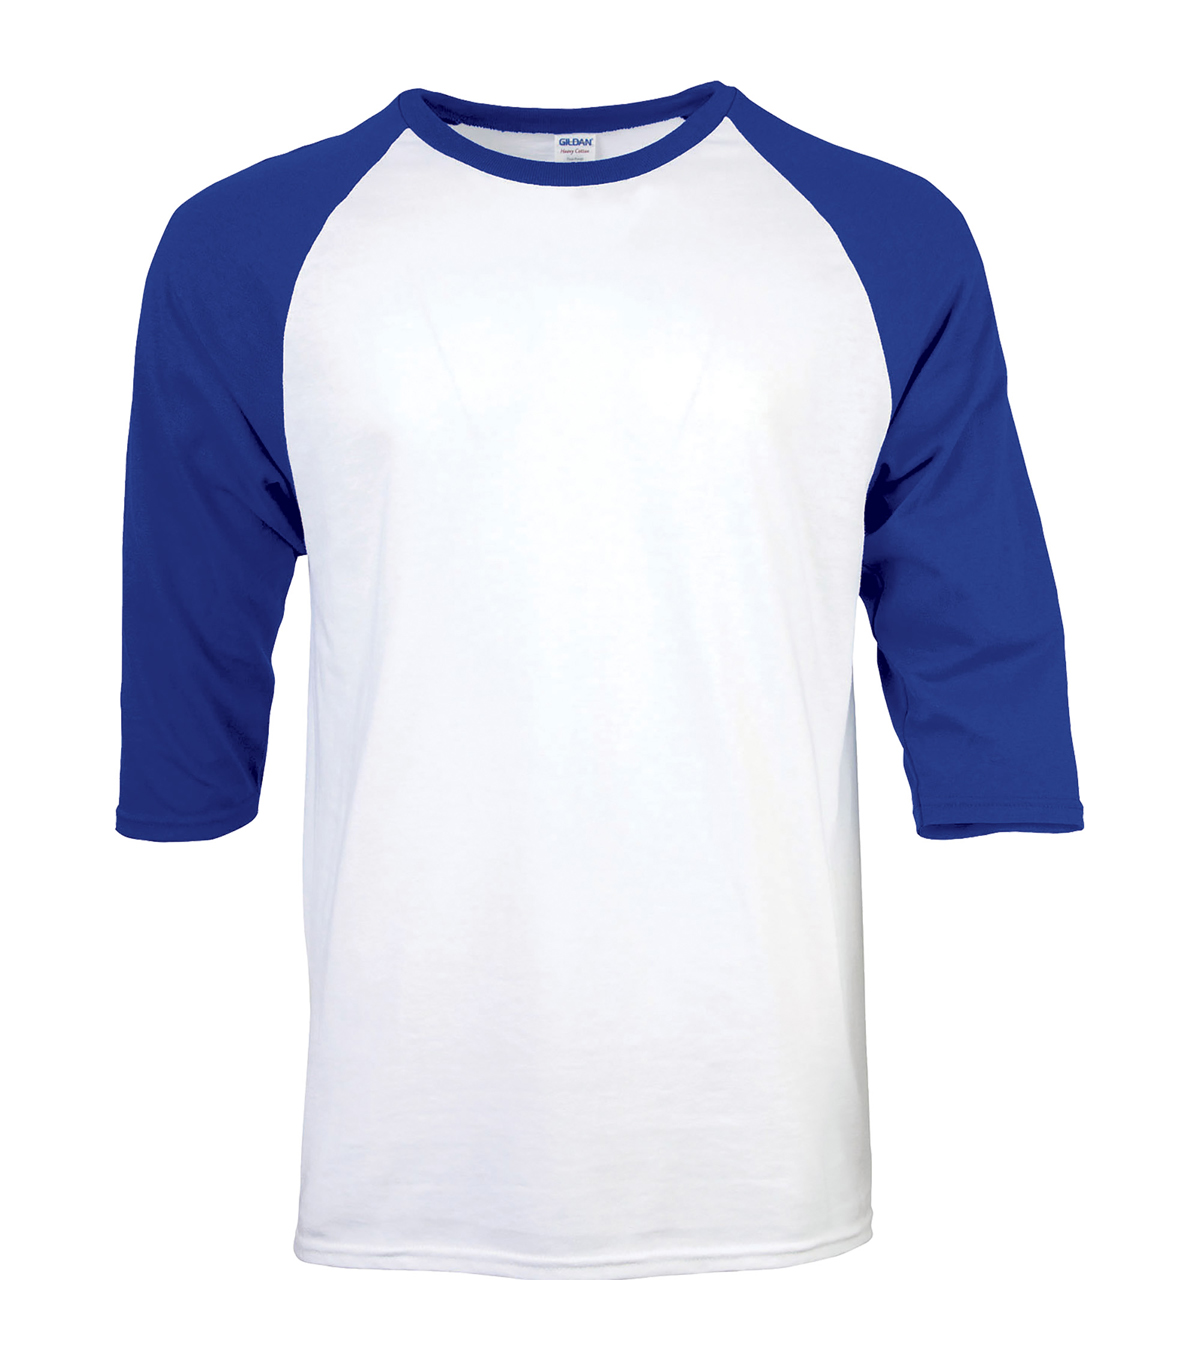 Gildan Large Adult Raglan Crew Sport T-Shirt, White-royal